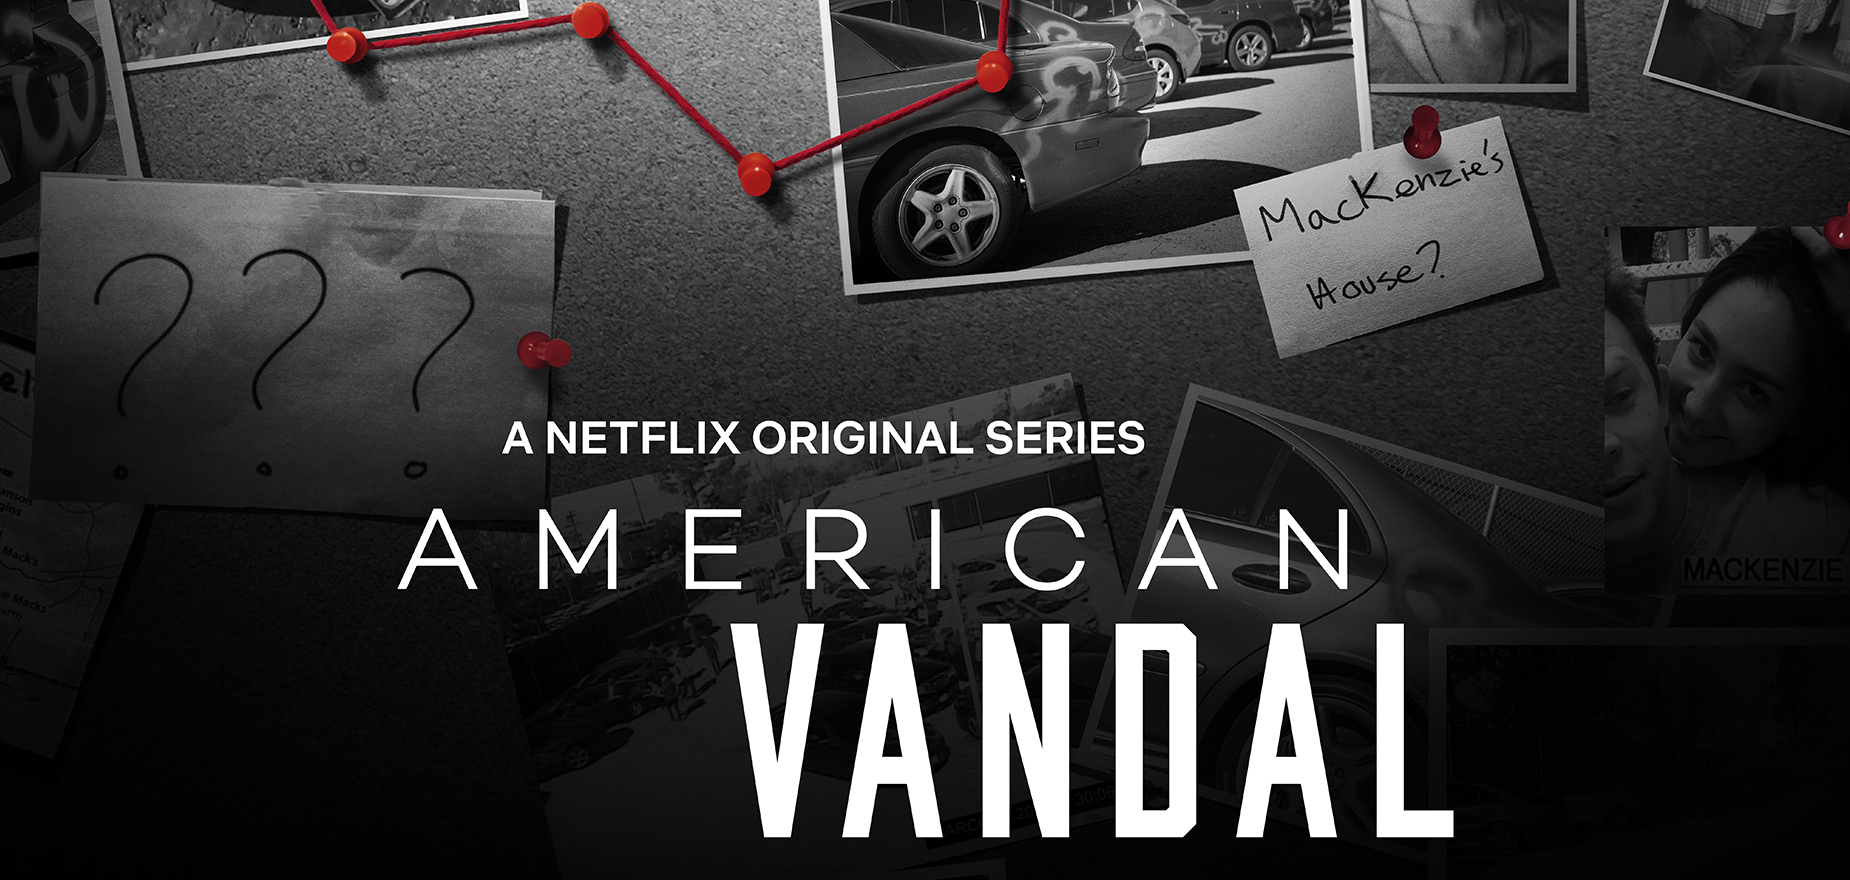 American Vandal - CBS Television Studios, Funny Or Die and 3 Arts Entertainment for Netflix